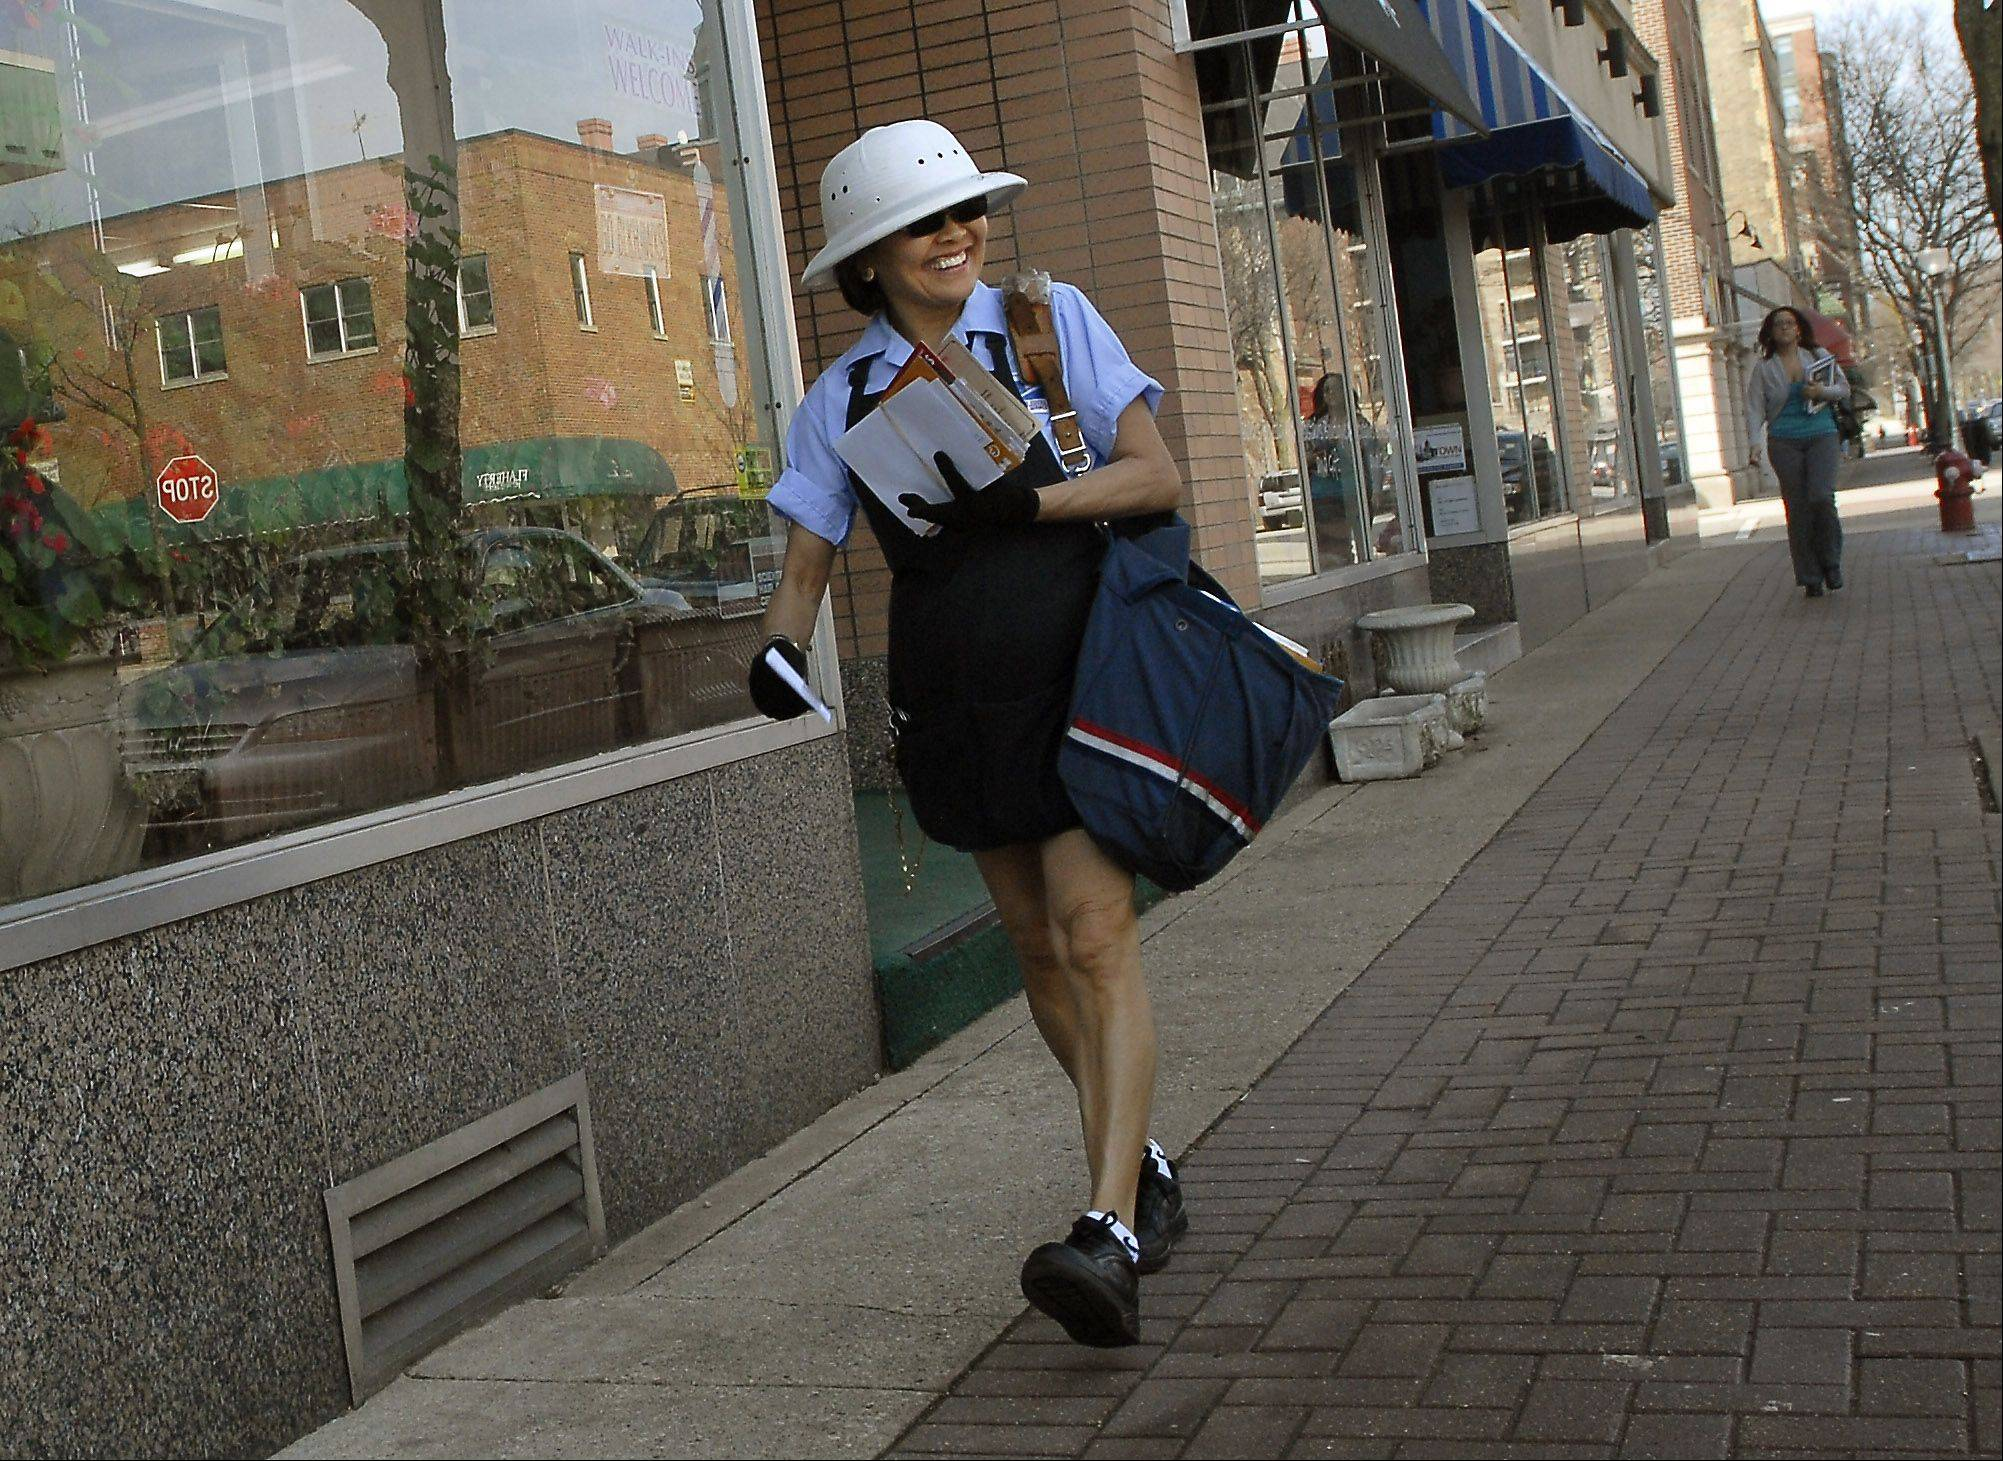 "Ching Velasquez, who has been delivering mail in downtown Arlington Heights for 24 years, smiles as she sees a familiar face on her route. With the temperature already at 70 degrees Wednesday morning, it was hard not to smile. ""I wait every day for weather like this. I love to wear coulottes, it feels so good."""